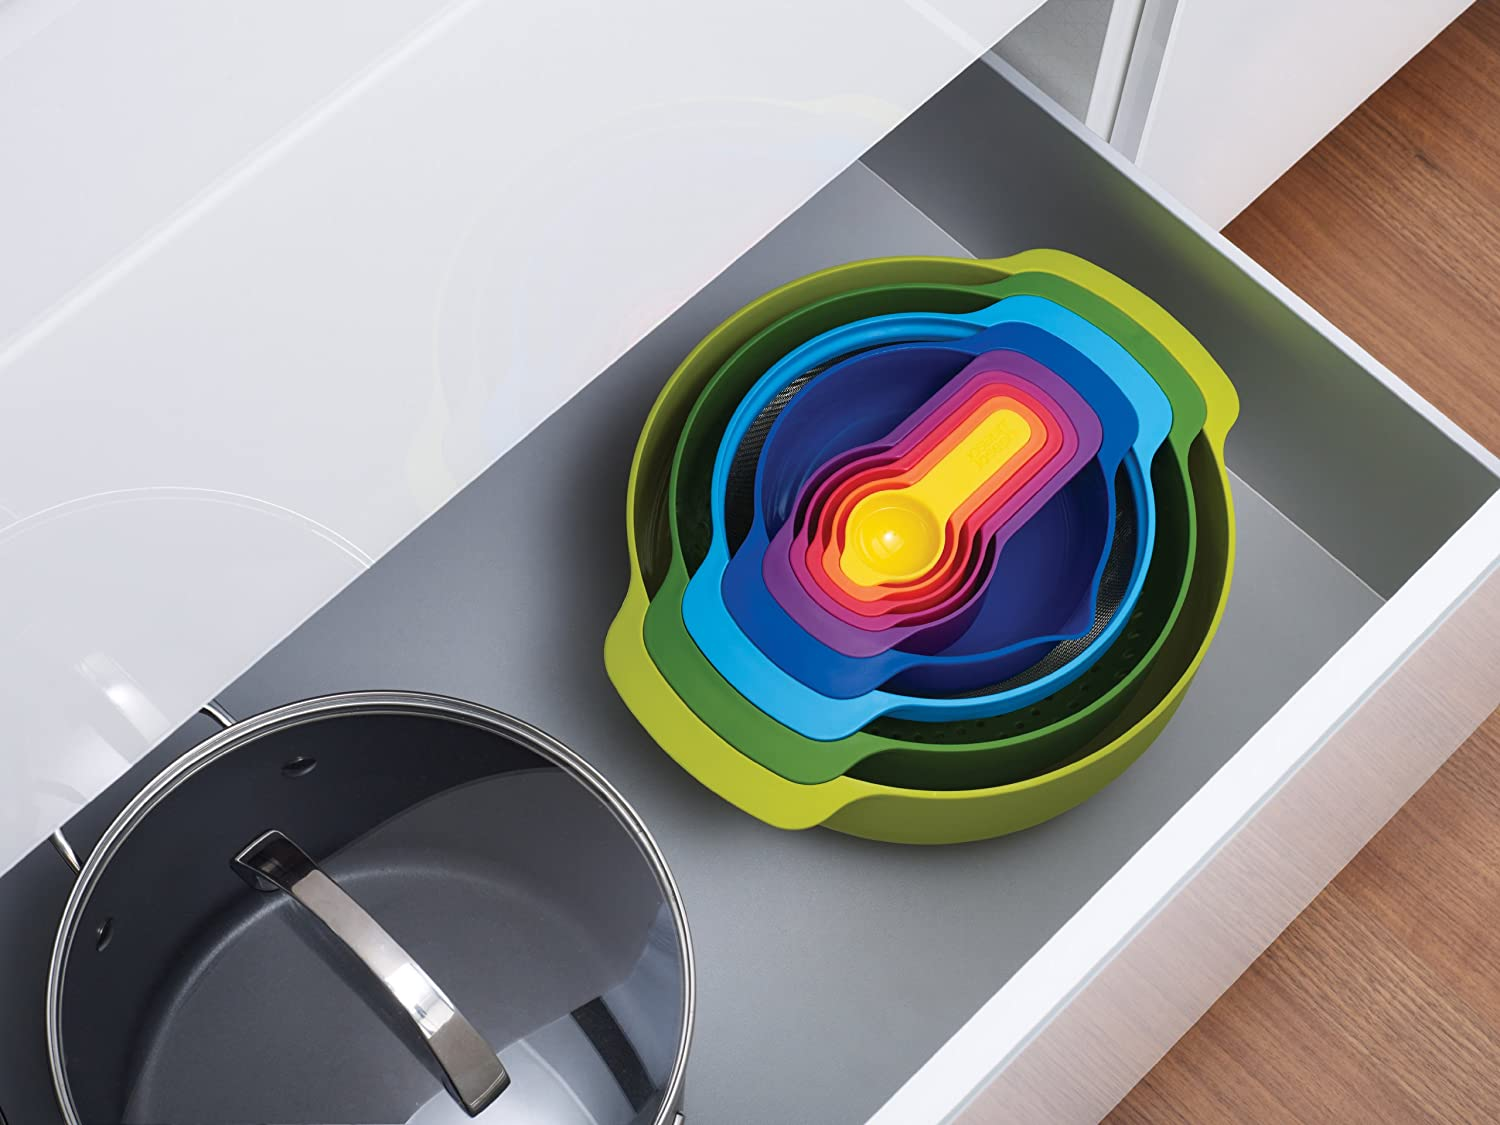 We round up and review the best Joseph Joseph utensils and gadgets perfect for your kitchen.